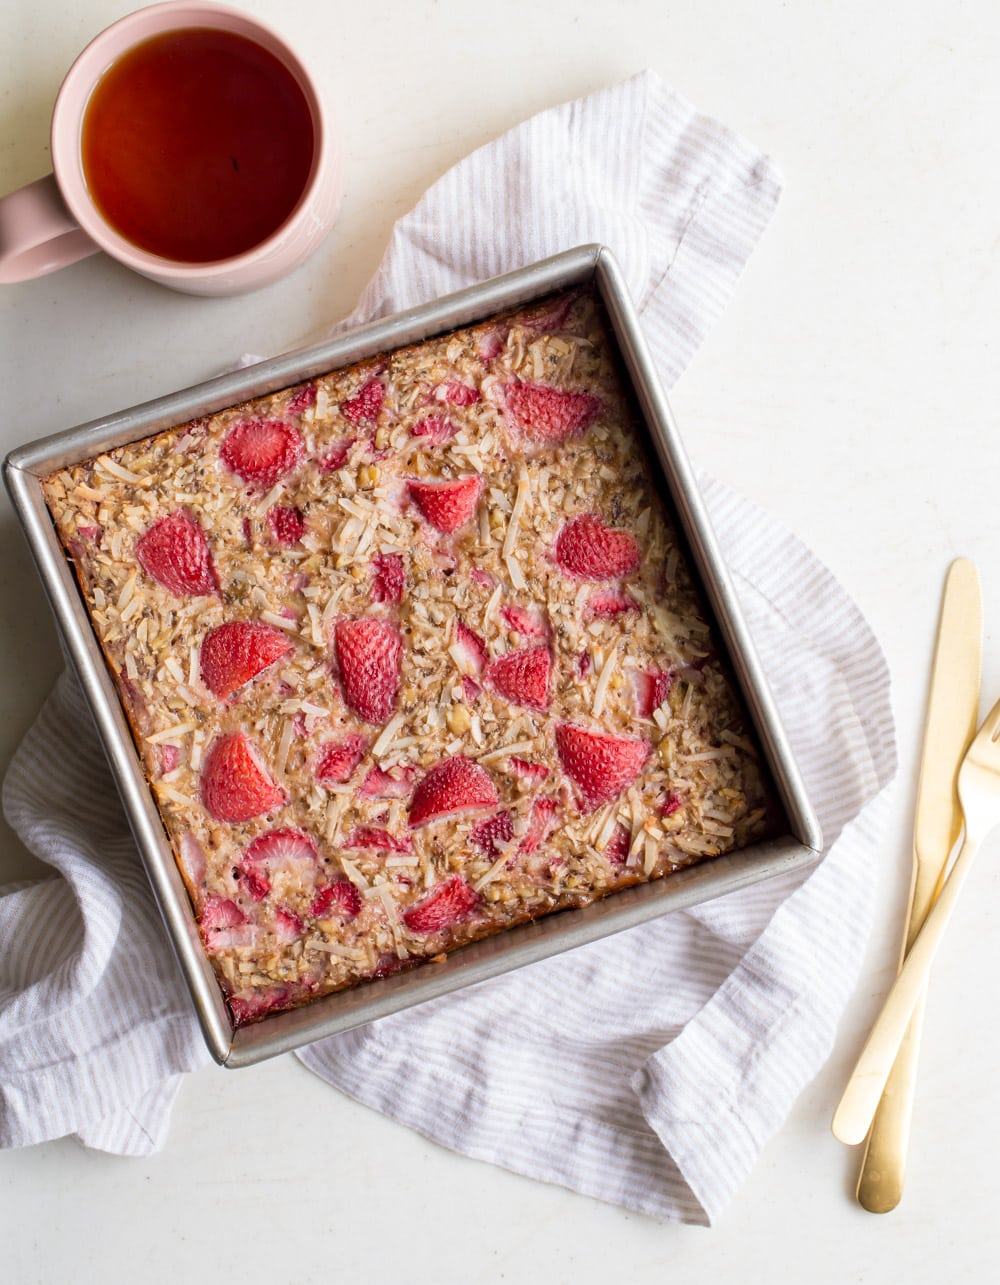 Baked strawberry and coconut mixture with nuts and chia seeds. A cup of tea in the background.